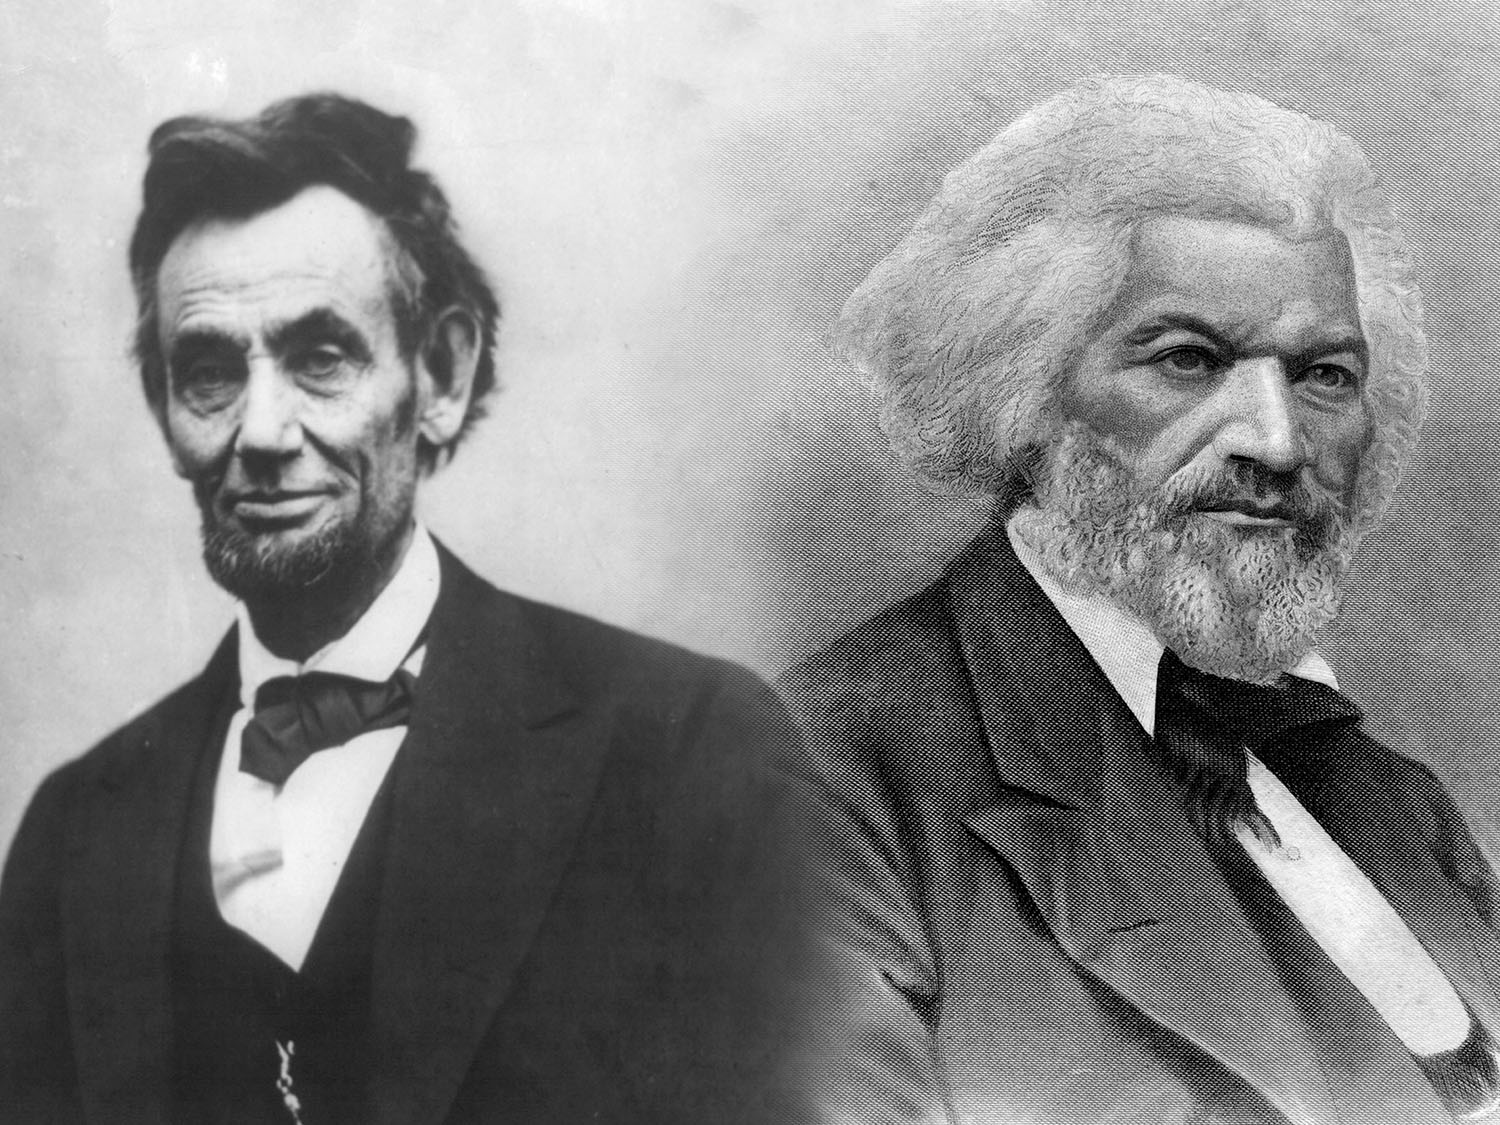 essay on abraham lincoln life abraham lincoln essay lincoln s  abraham lincoln and frederick douglass a compare and contrast abraham lincoln and frederick douglass a compare essay on life